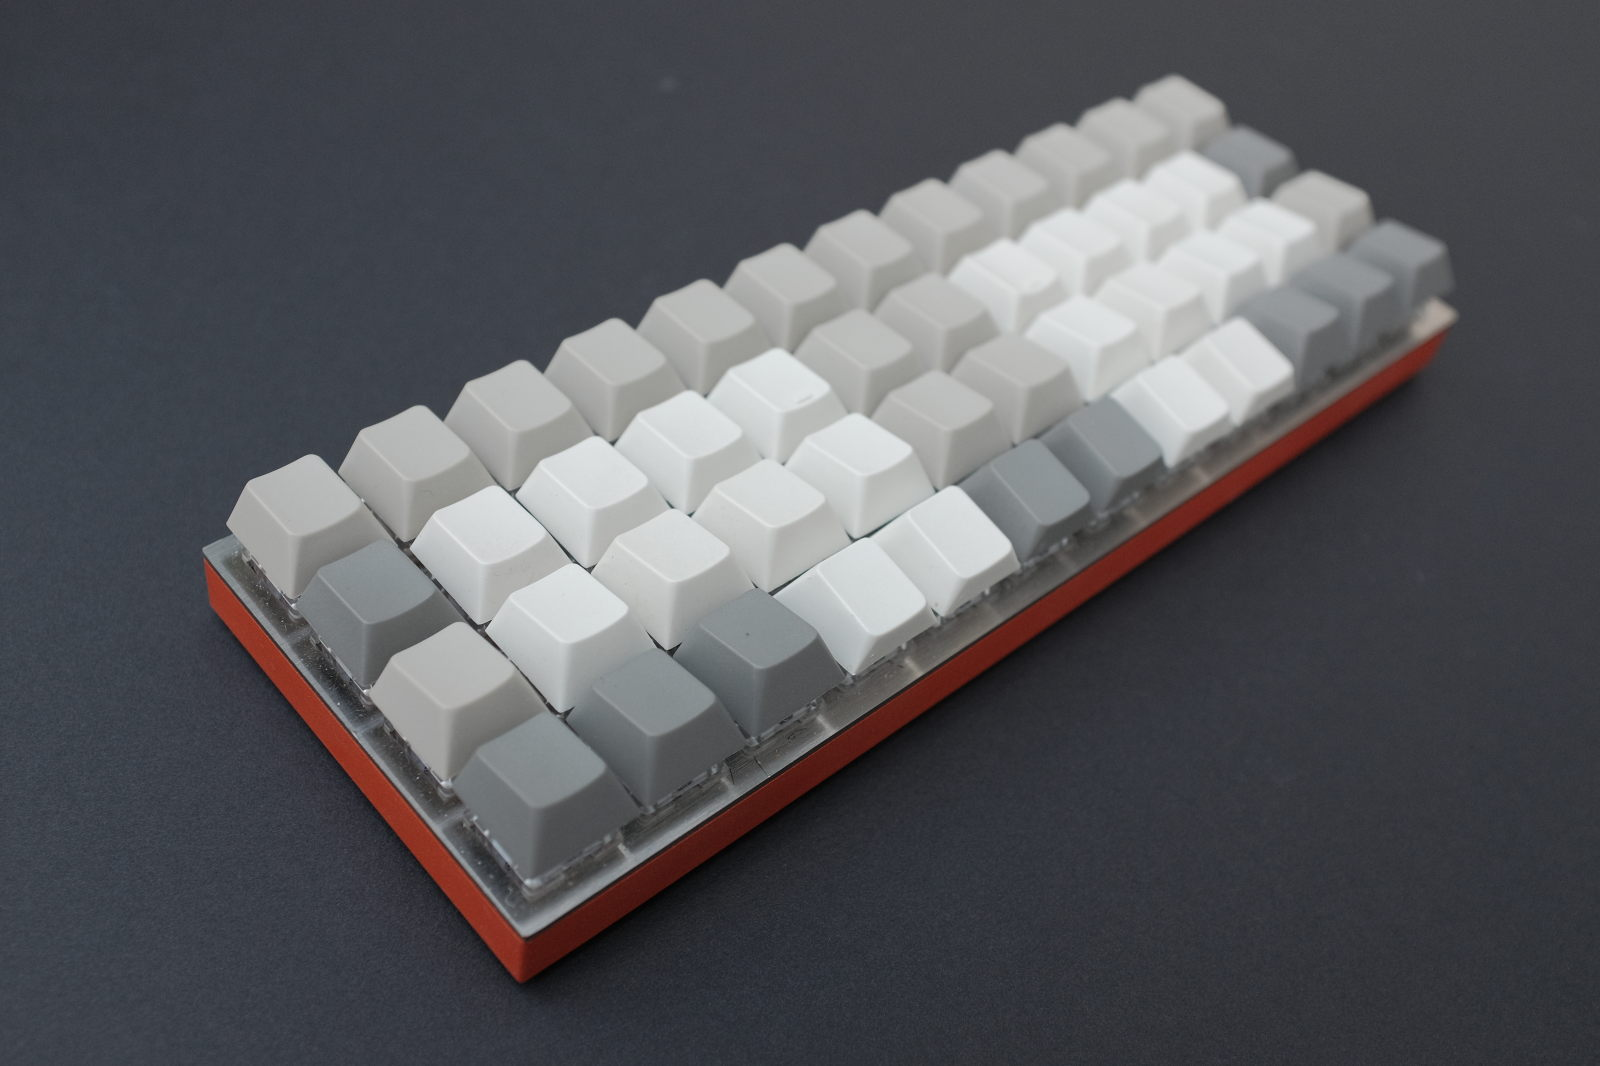 Planck with Cherry keycaps